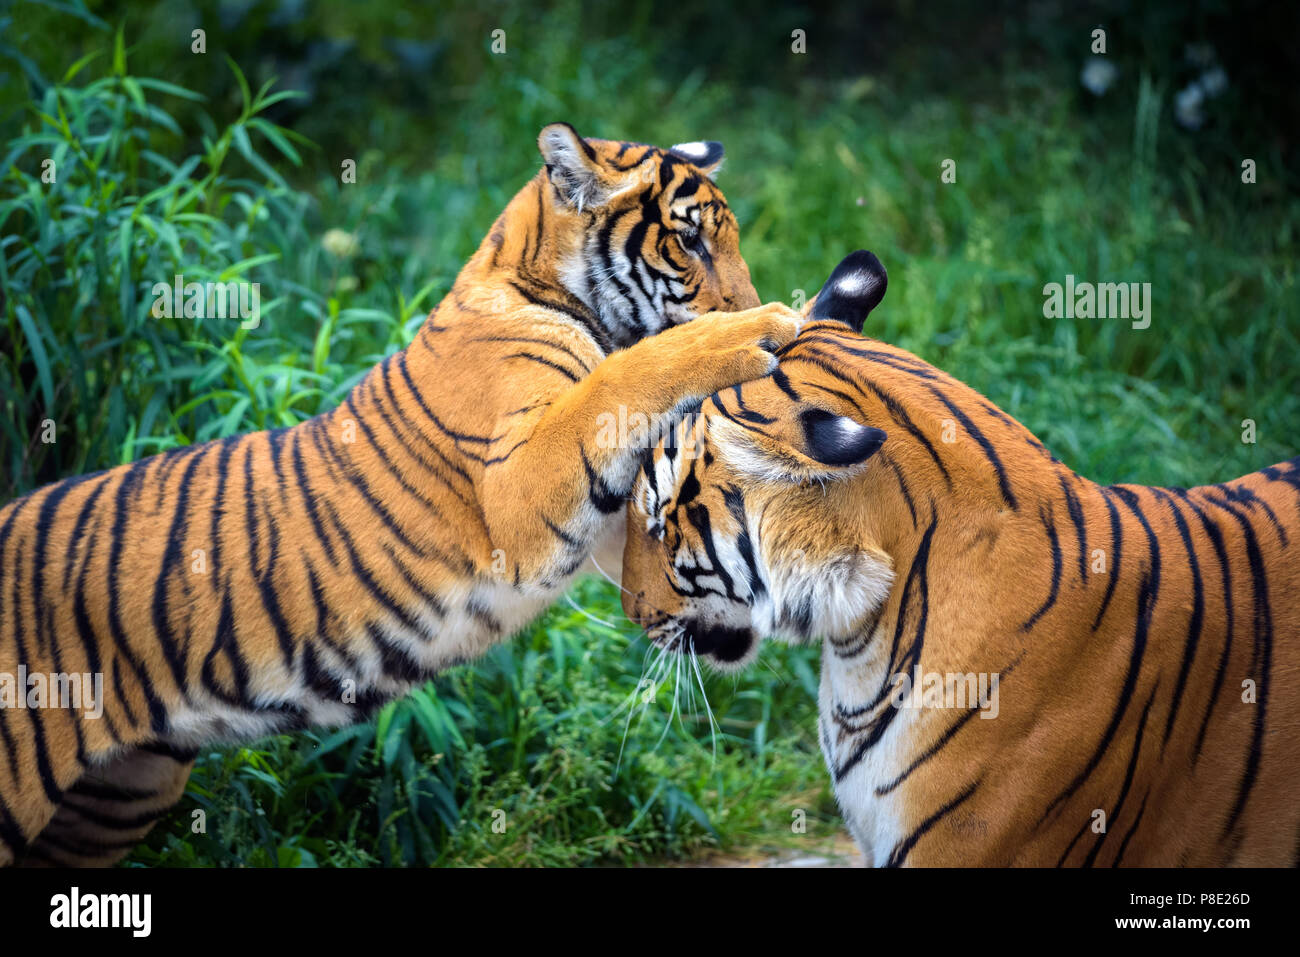 Two young malayan tigers fighting - Stock Image